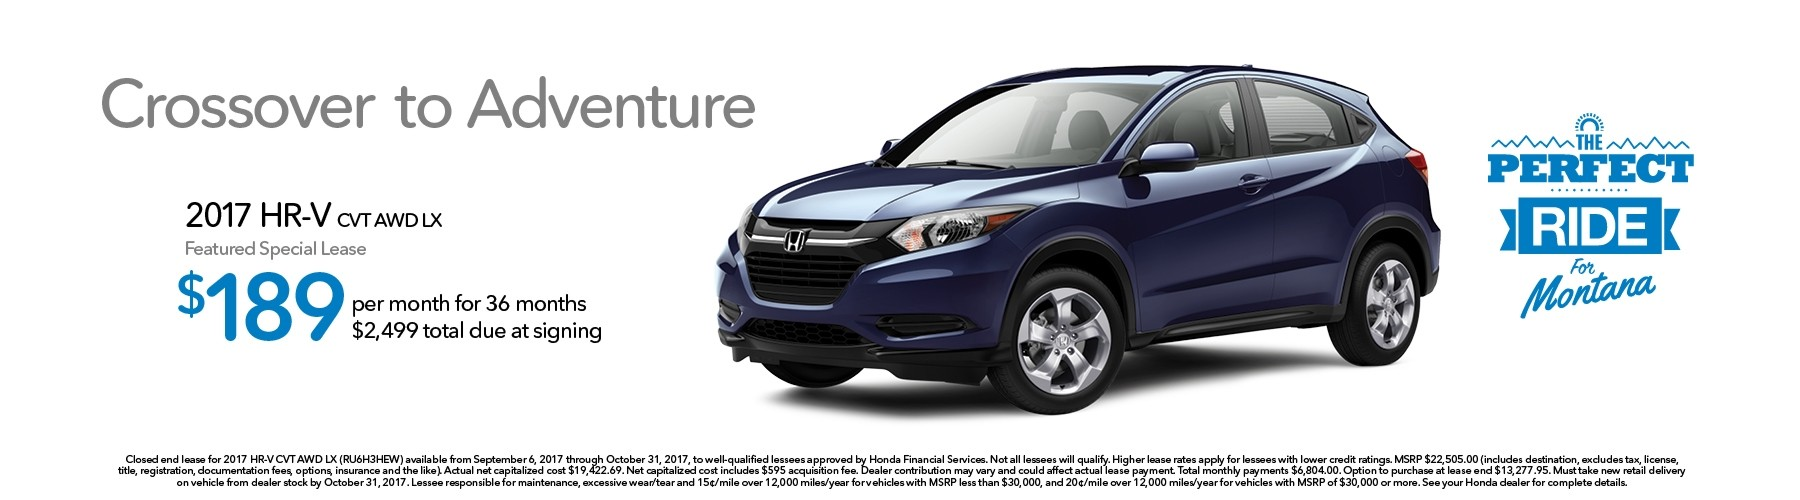 2017 honda hr v montana honda dealers for Montana honda dealers